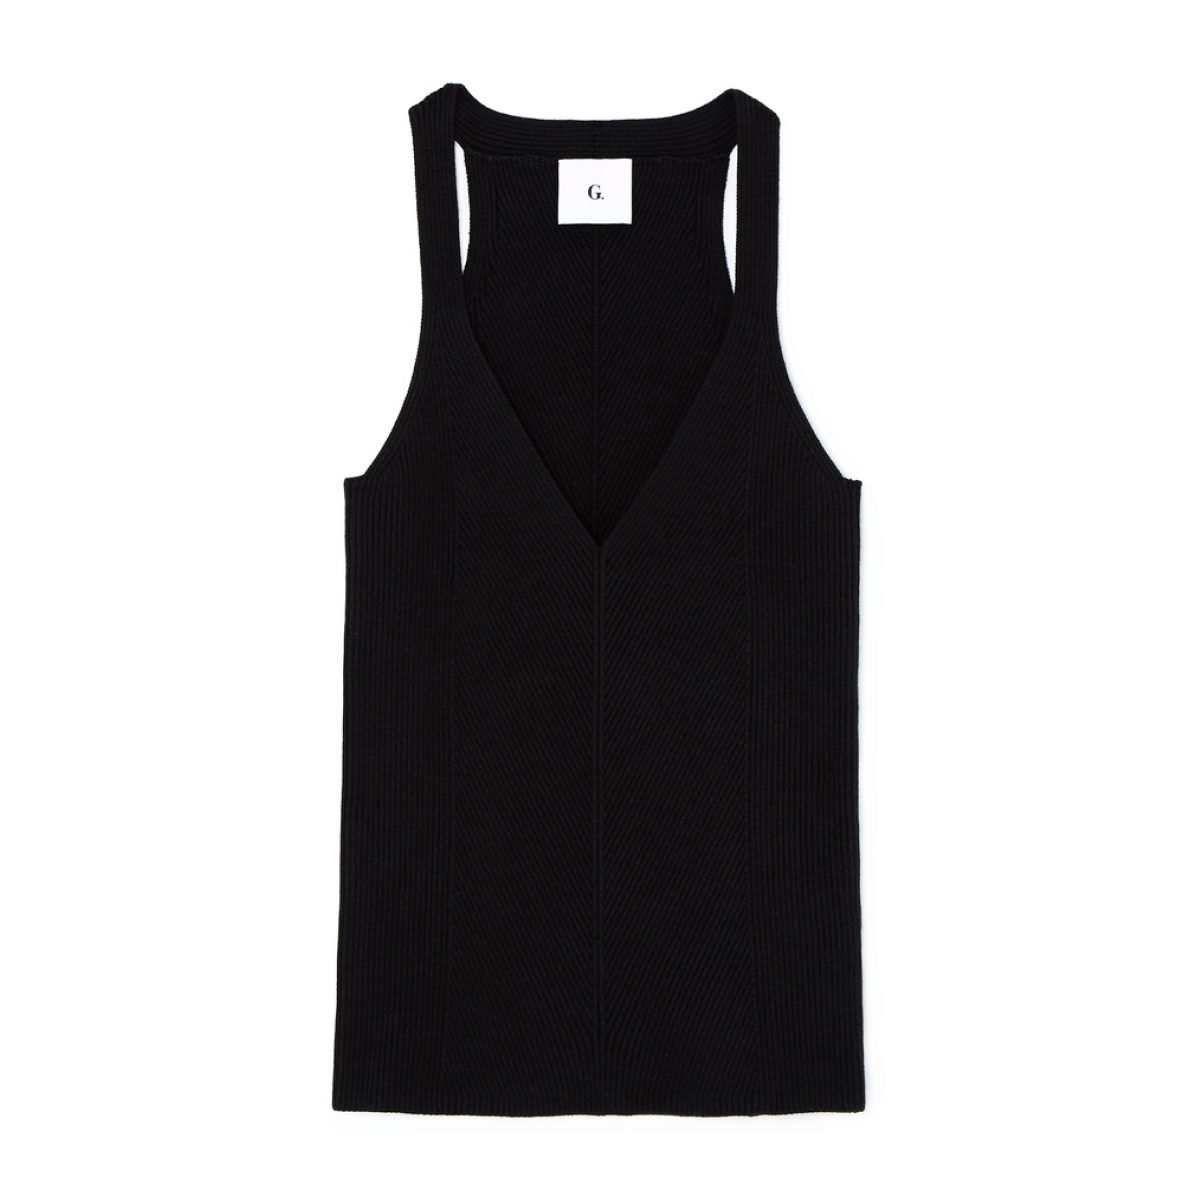 G. Label samantha engineered-rib tank